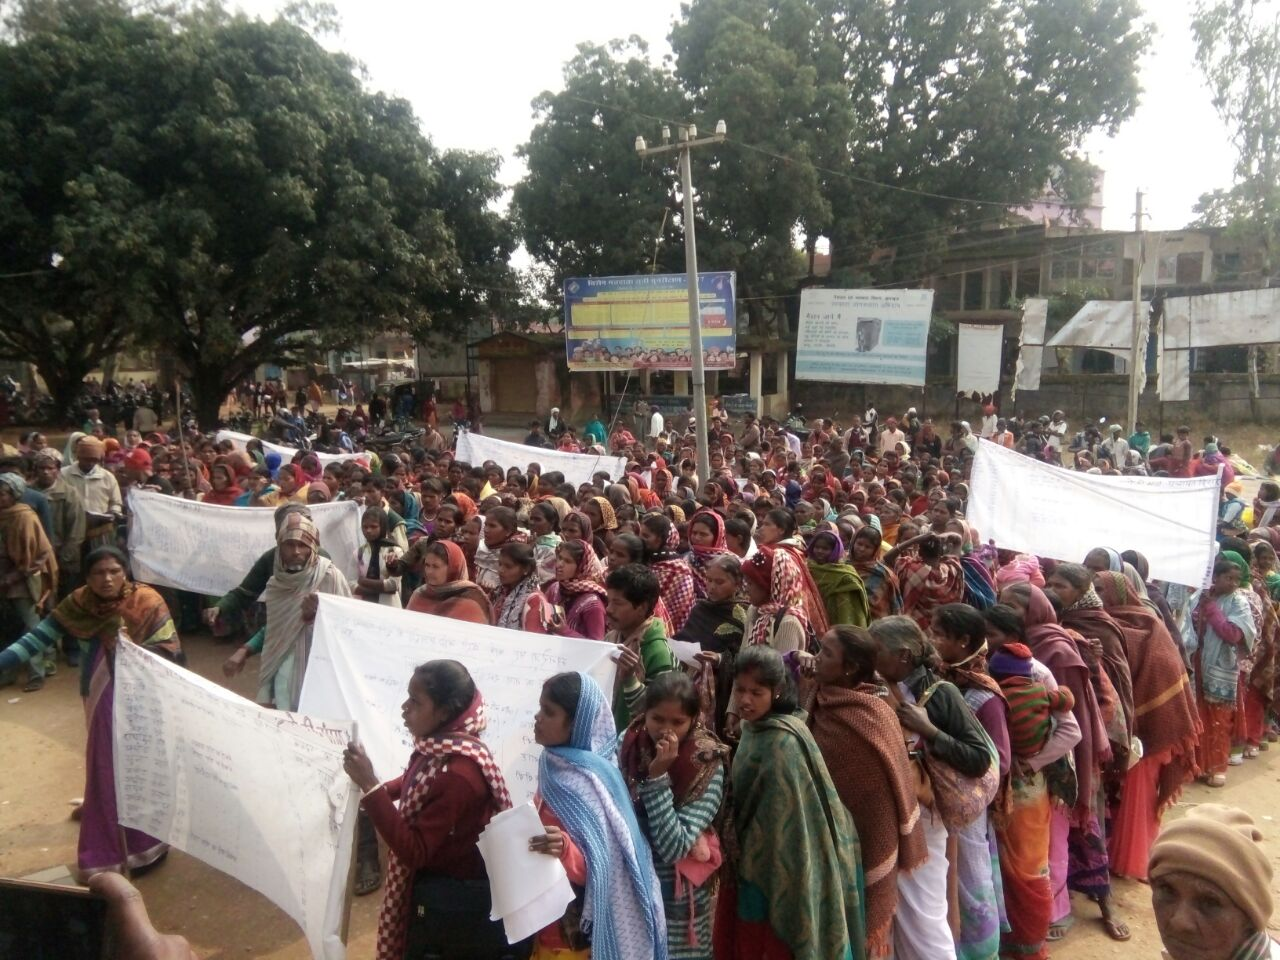 Workers hold banners with details of delayed wage payments under MGNREGA, most caused due to Aadhaar errors, in Lohardaga, Jharkhand. Credit: Nitish Kumar Badal